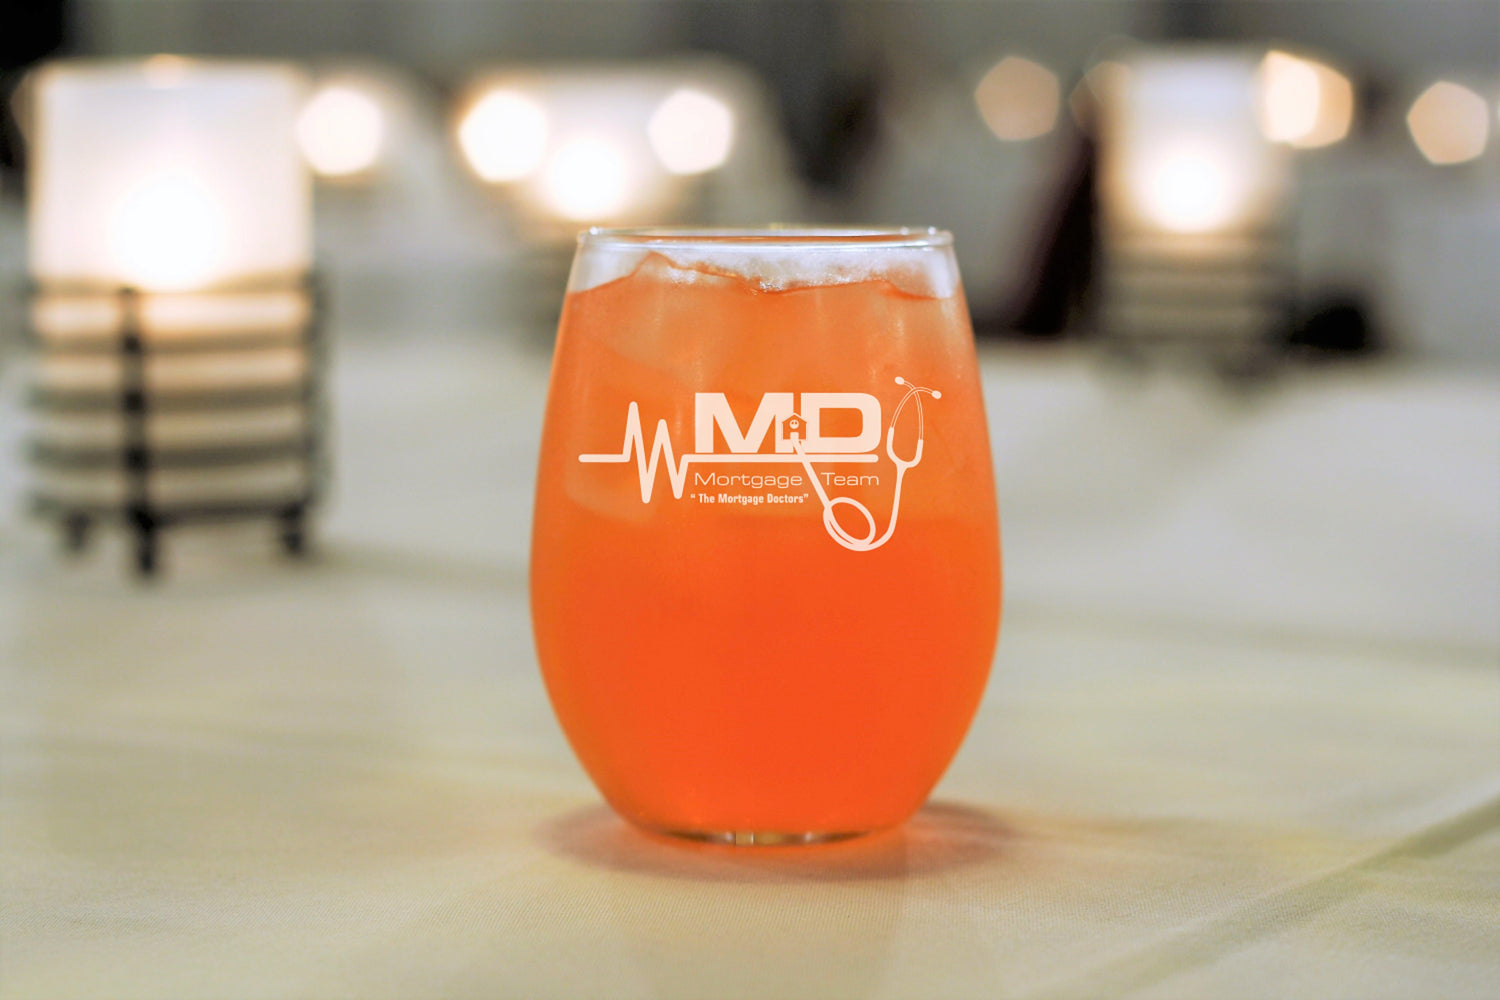 MD Mortgage Team | 15oz Stemless Wine Glass